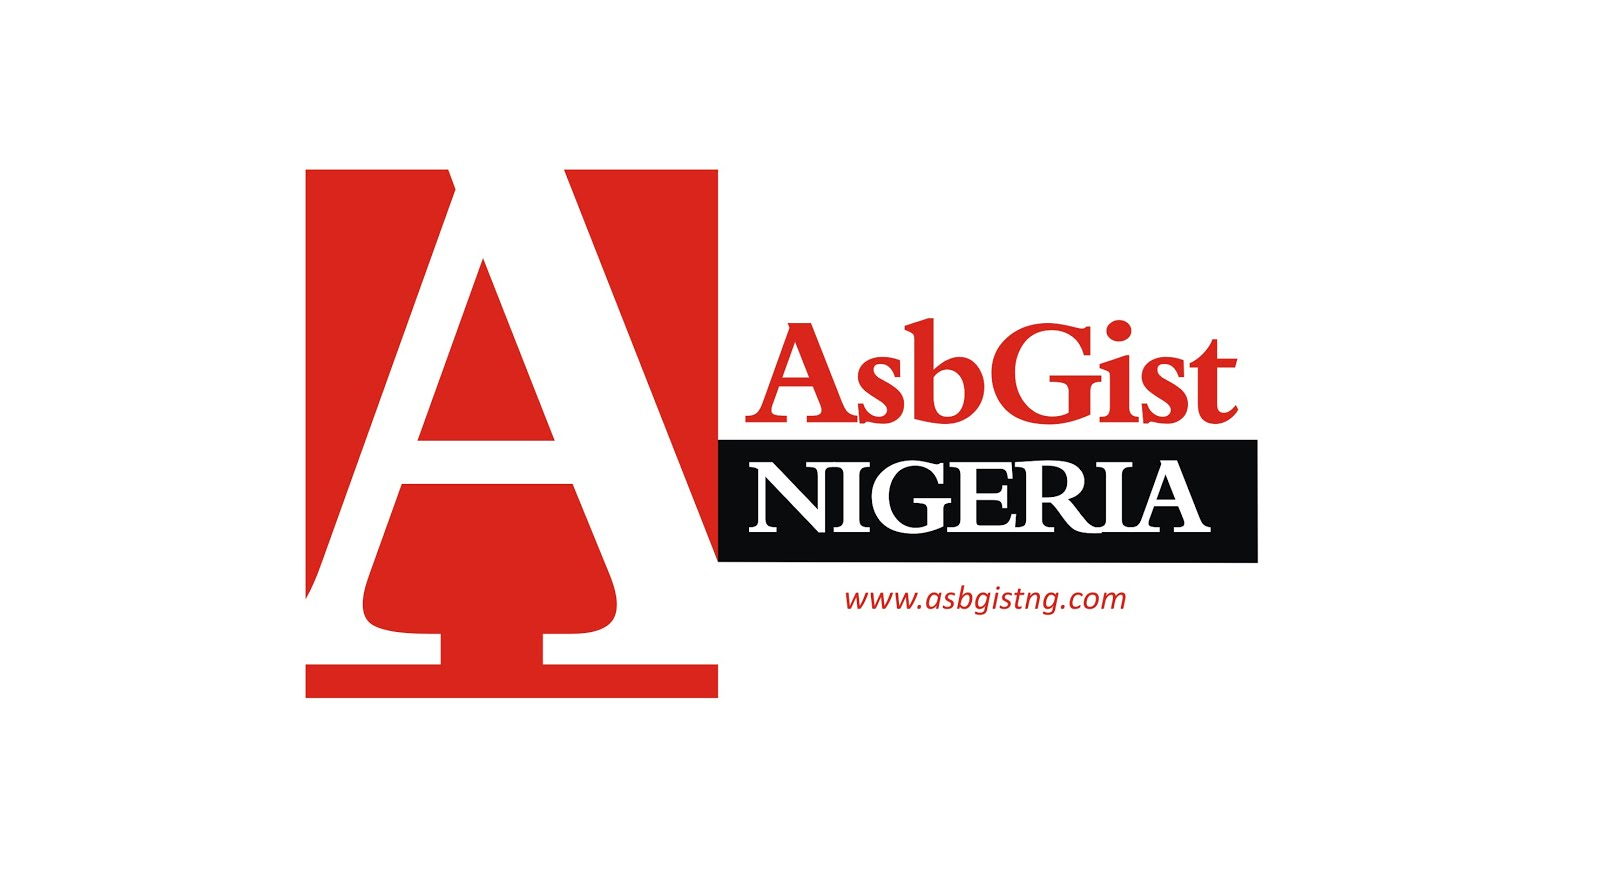 AsbGist Nigeria: News, Sport, Showbiz, Gospel Celebrity, Entertainment, lifestyle